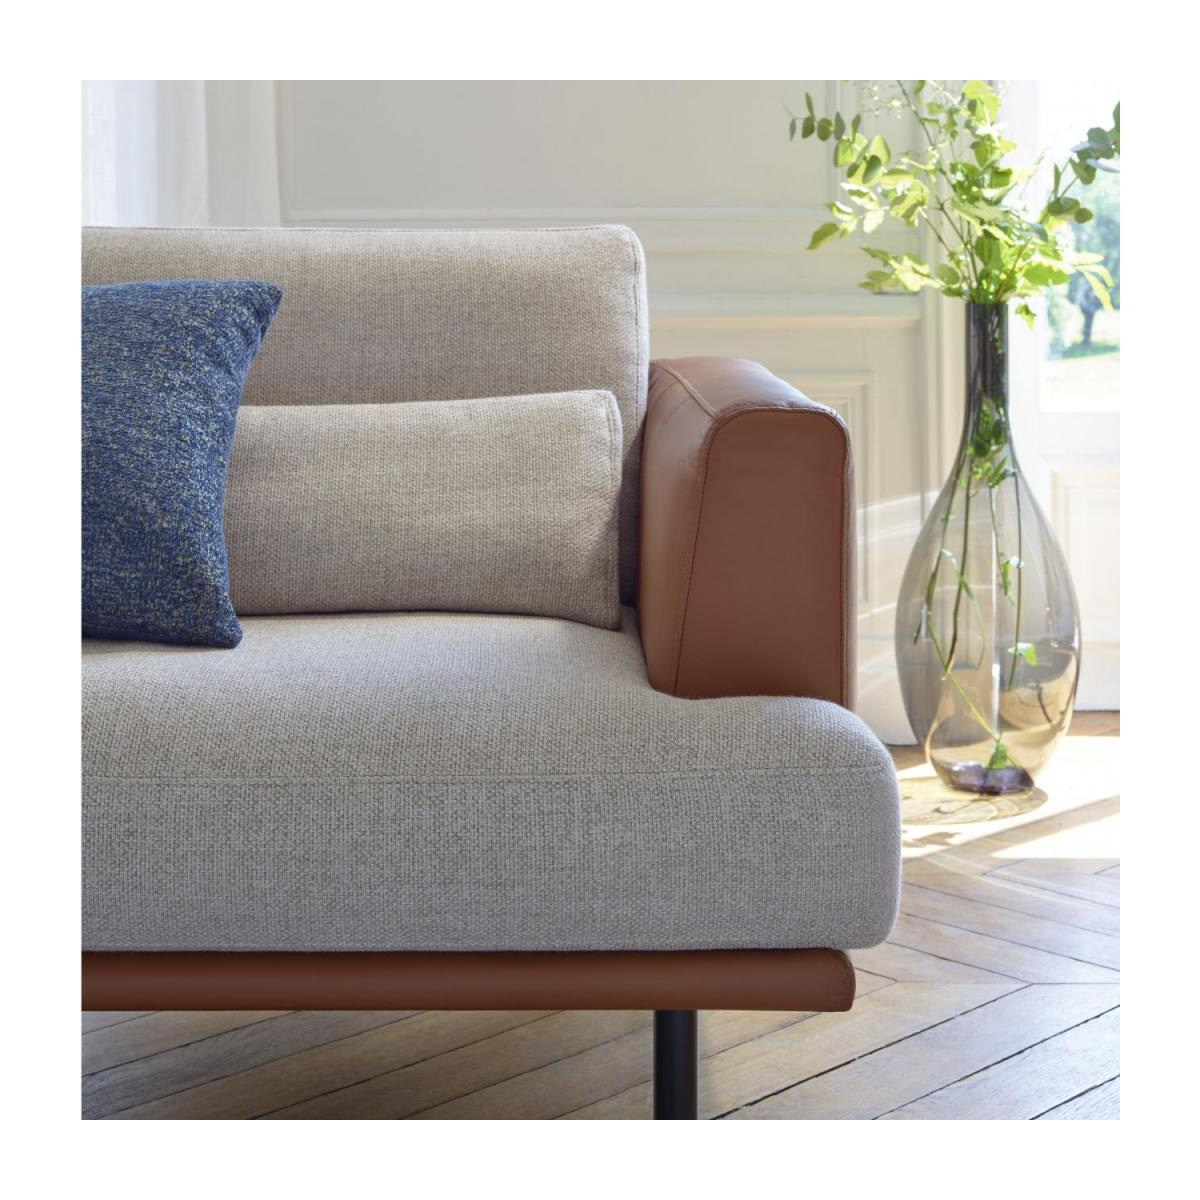 3 seater sofa in Ancio fabric, nature with base in brown leather n°5